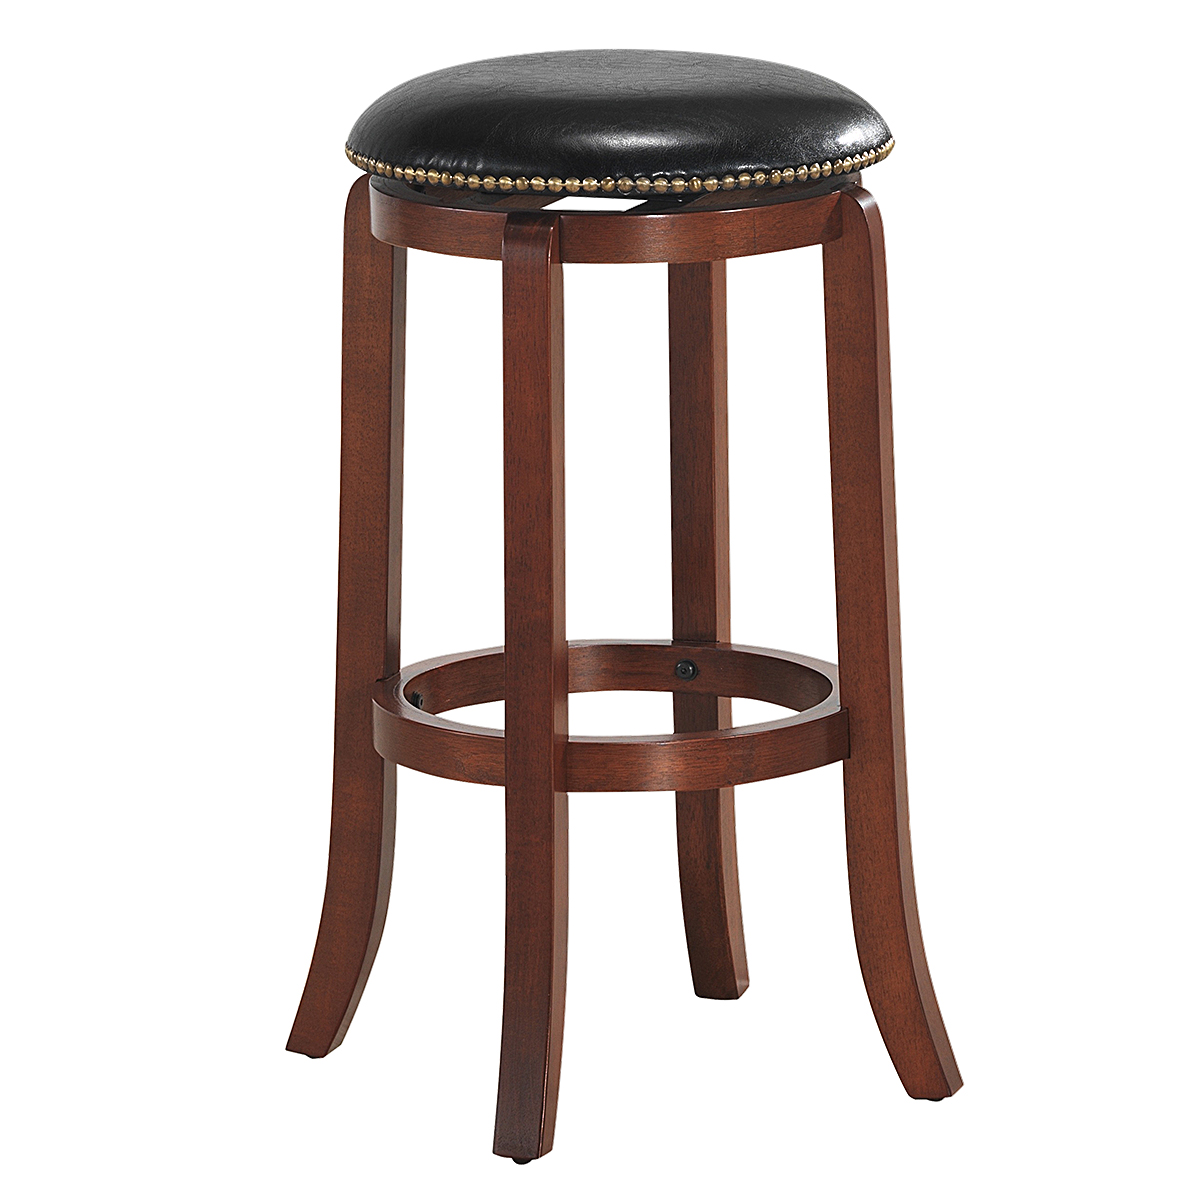 Costway 29'' Swivel Bar Stool Leather Padded Dining Kitchen Pub Bistro Chair Backless